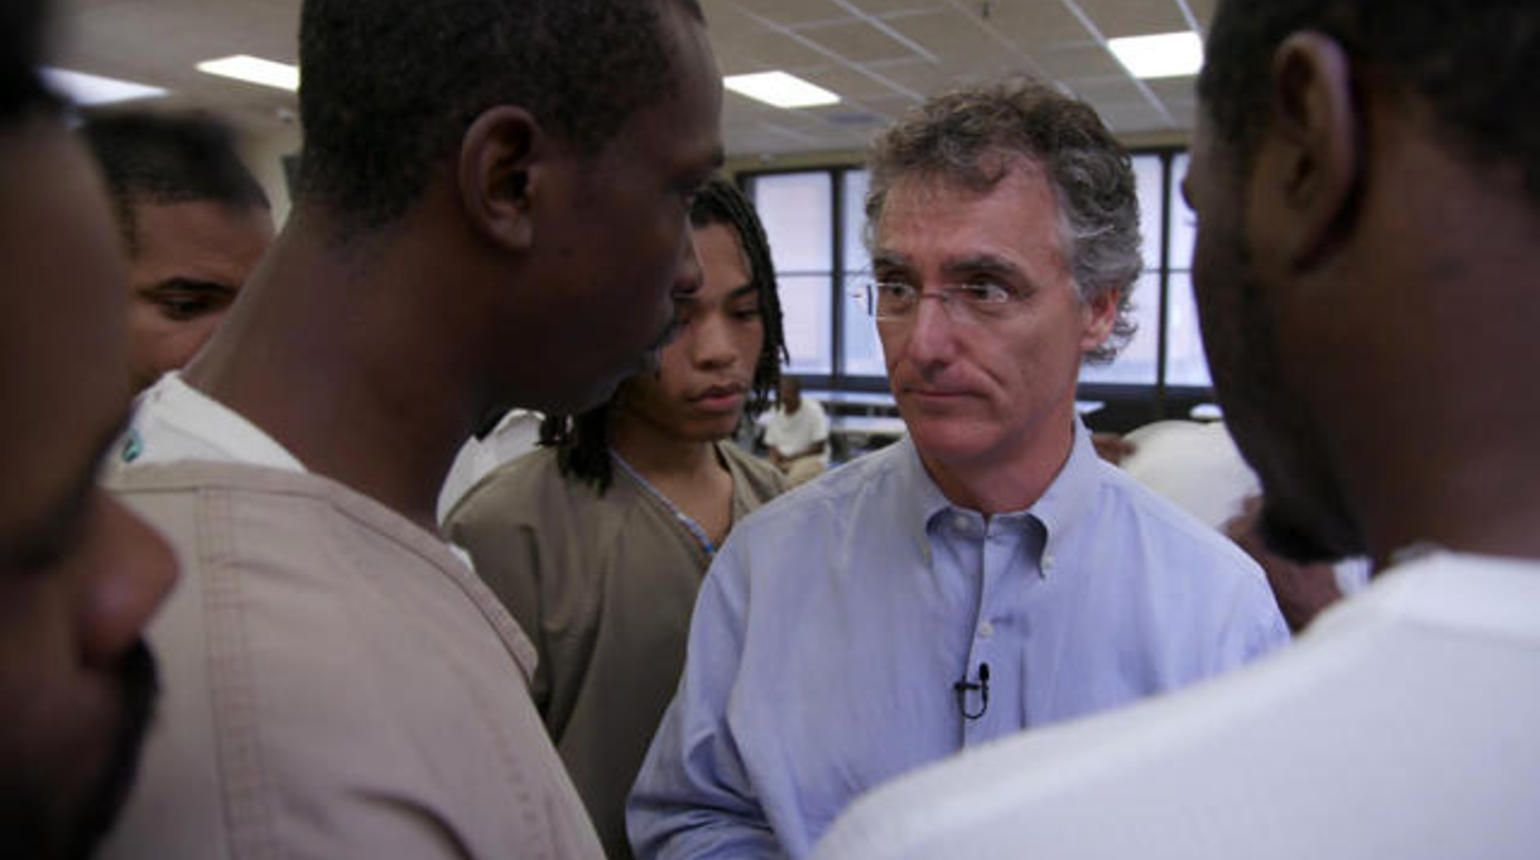 Half of the inmates shouldn't be here, says Cook County